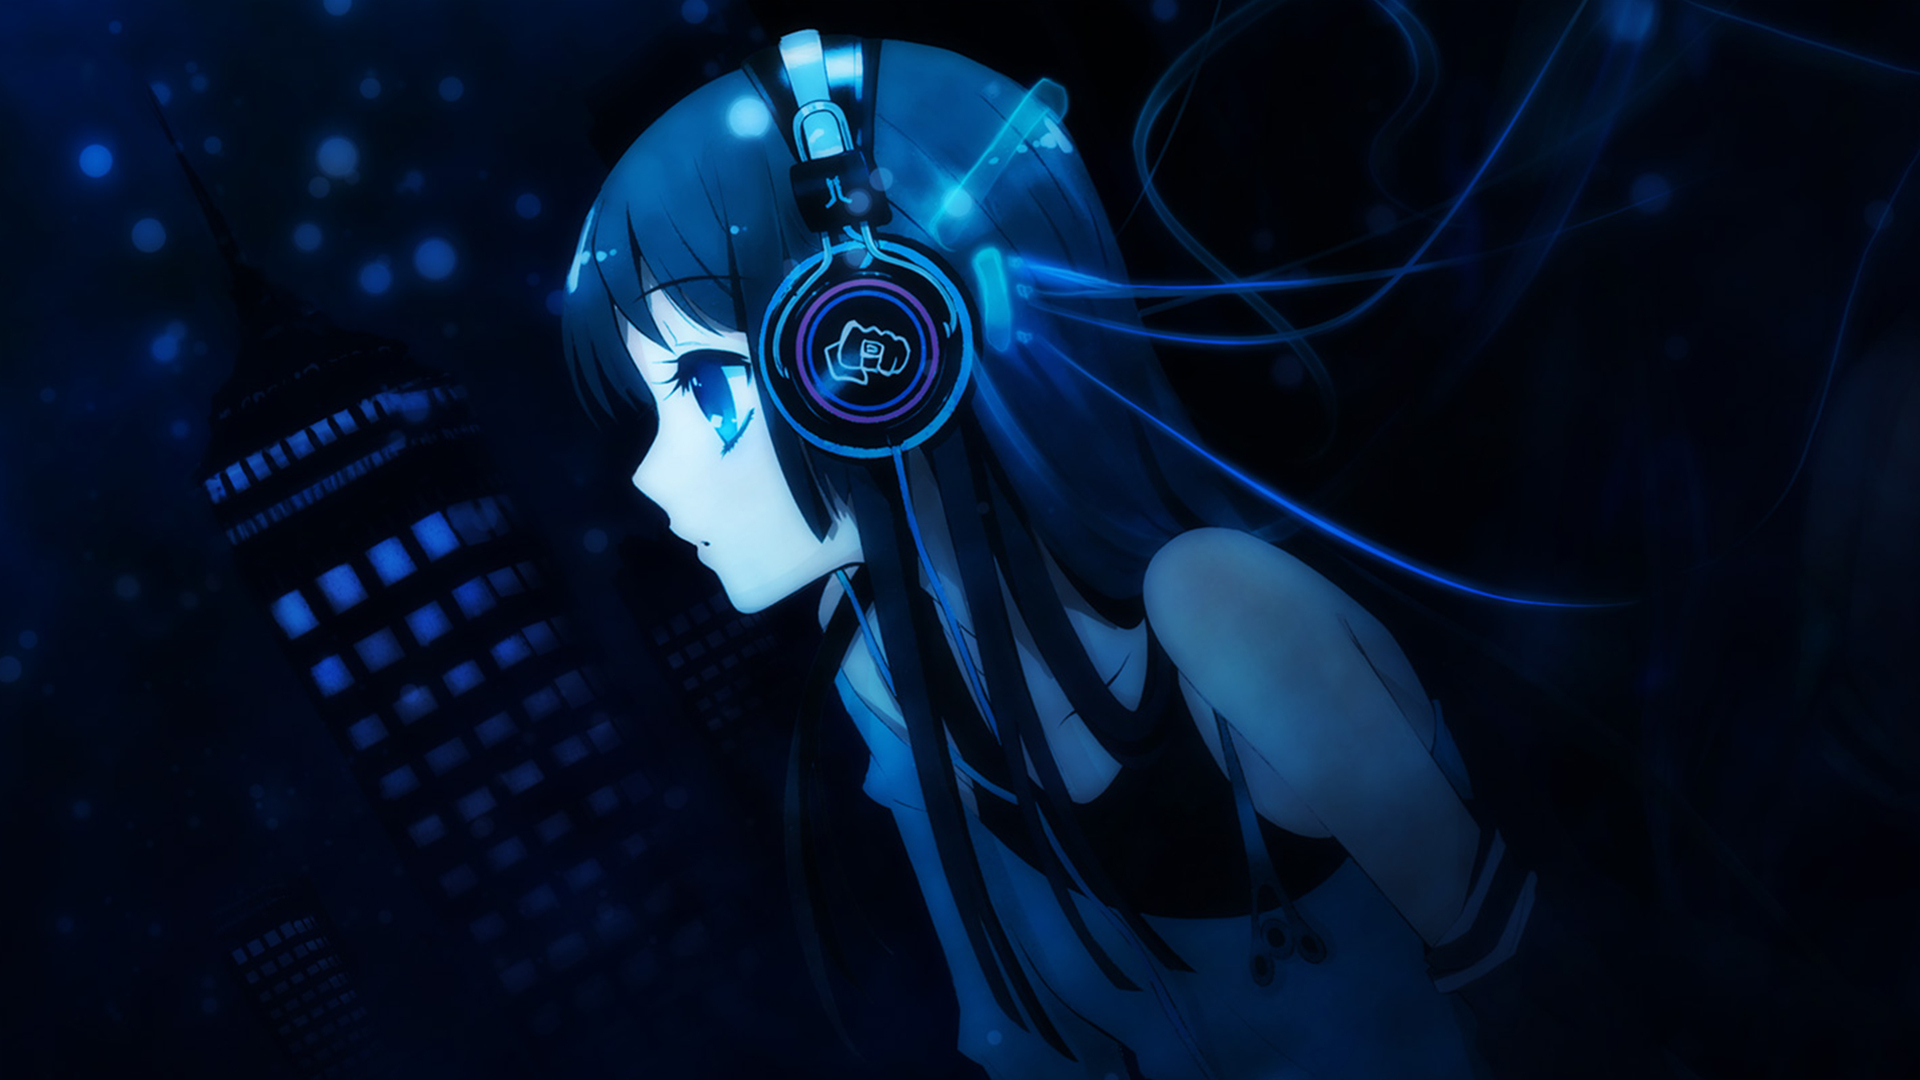 Anime Music Wallpaper wallpapers55com   Best Wallpapers for PCs 1920x1080